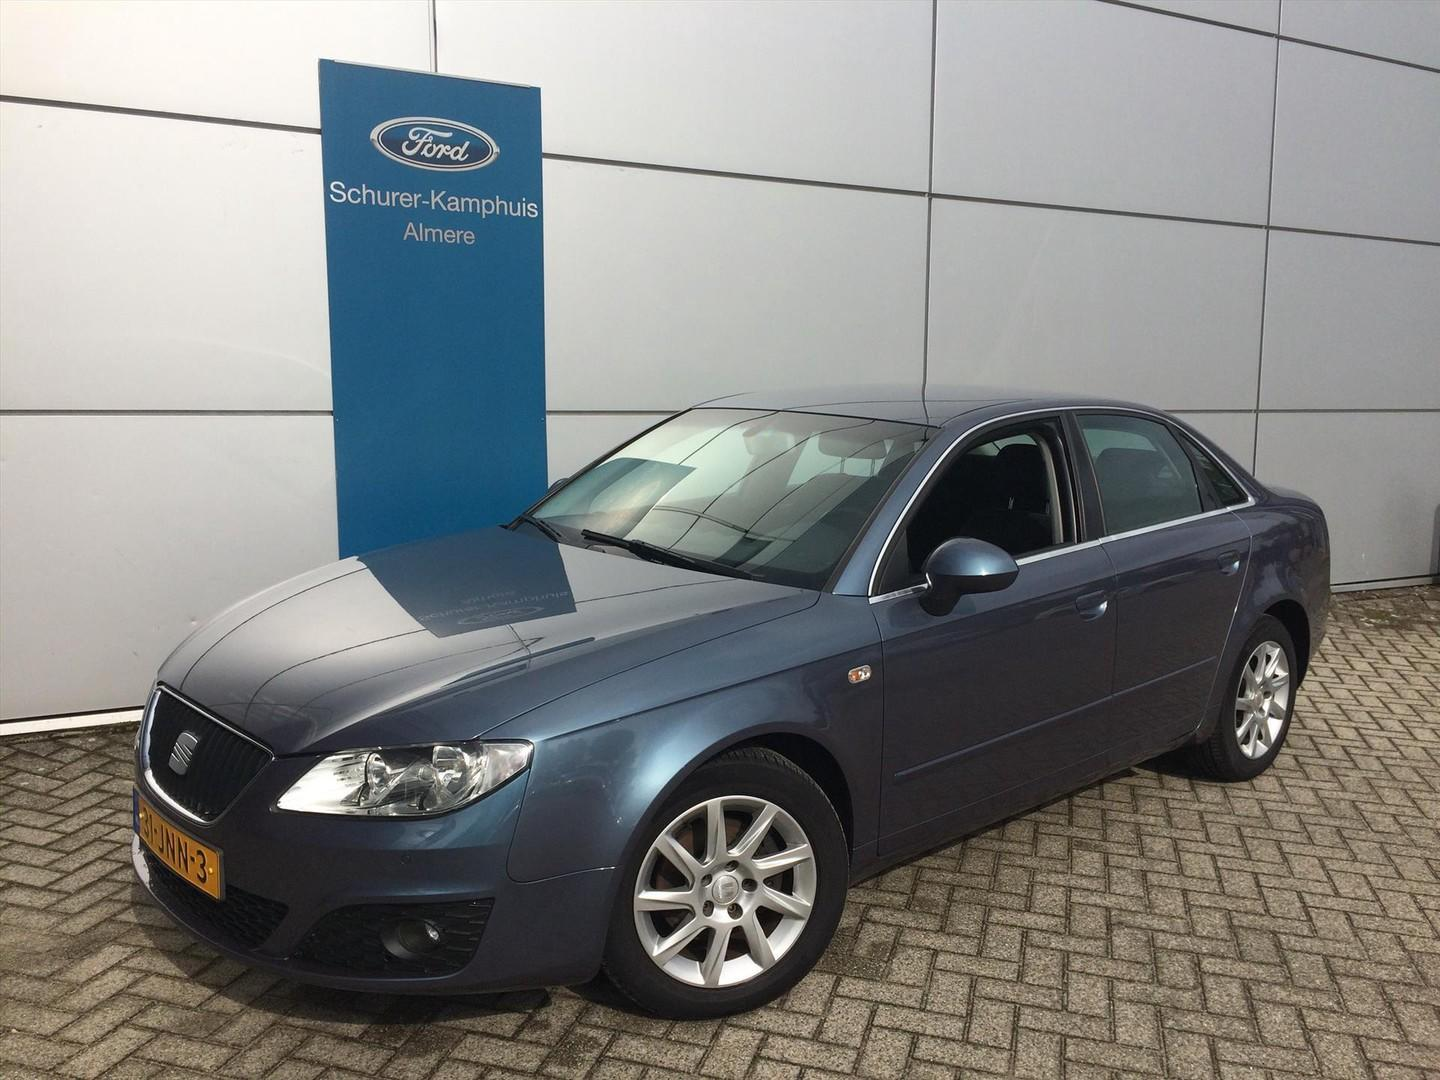 Seat Exeo 1.6 16v style navigatie / climate / cruise / licht metaal